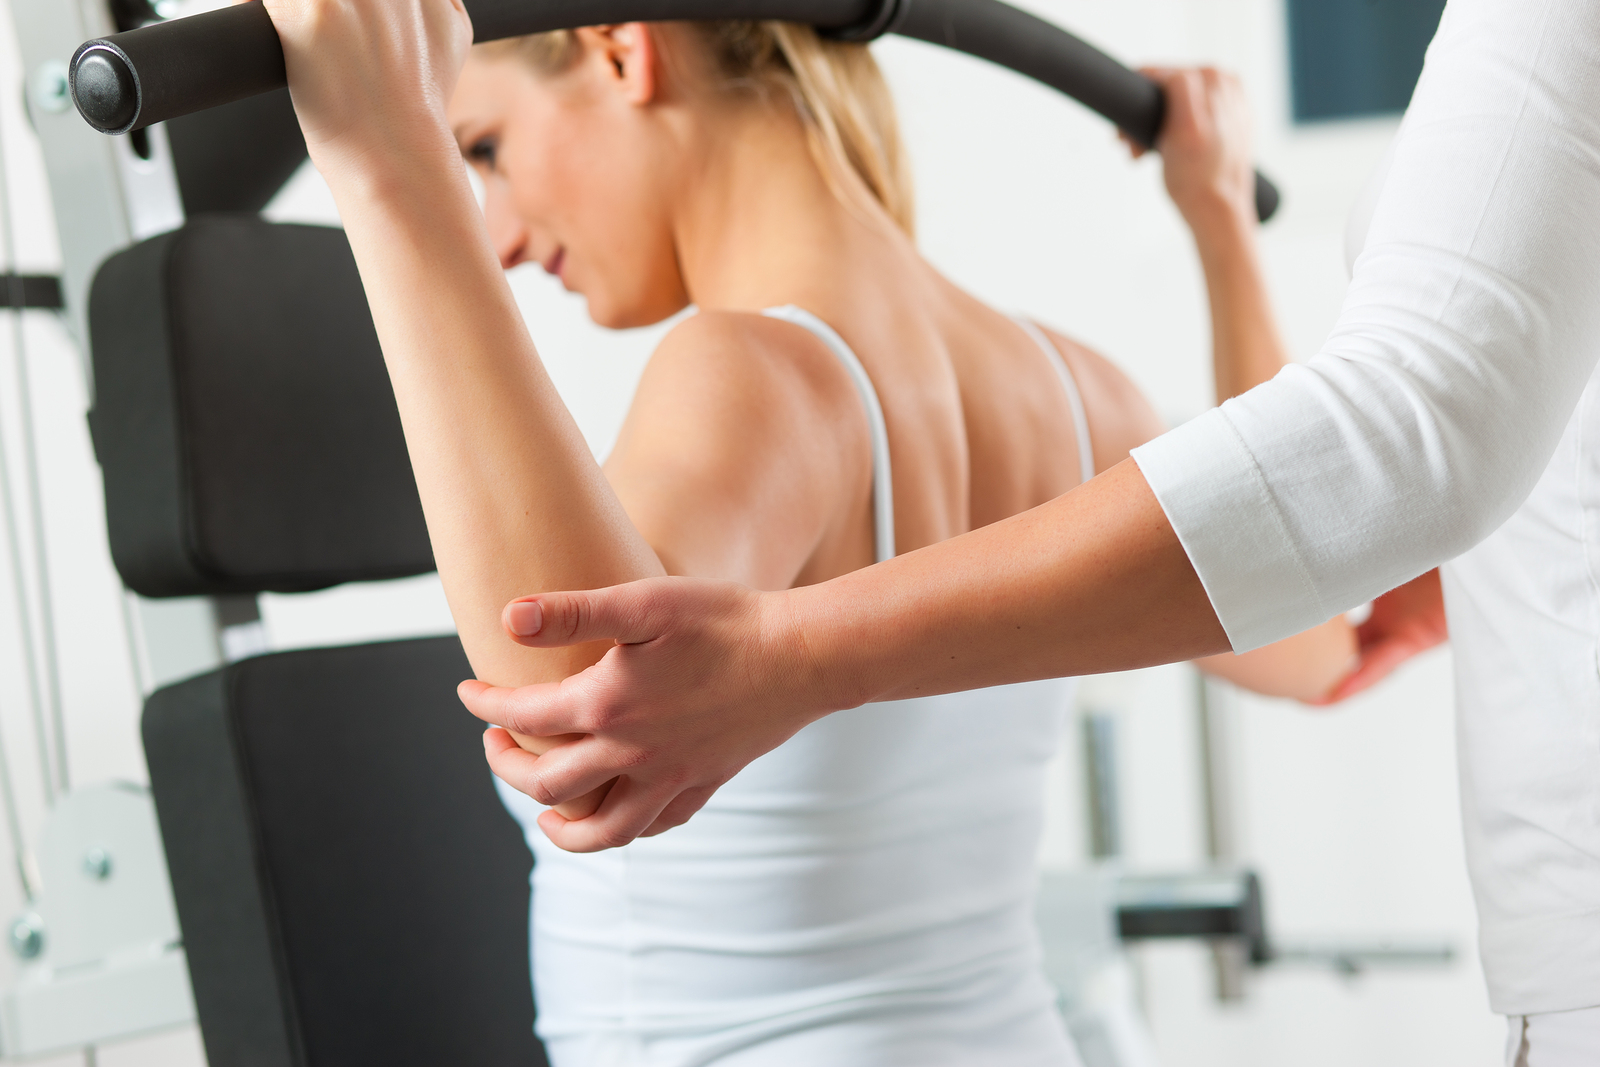 Shoulder Pain Treatment in Indianapolis from Our Chiropractor Team at Hull Chiropractic